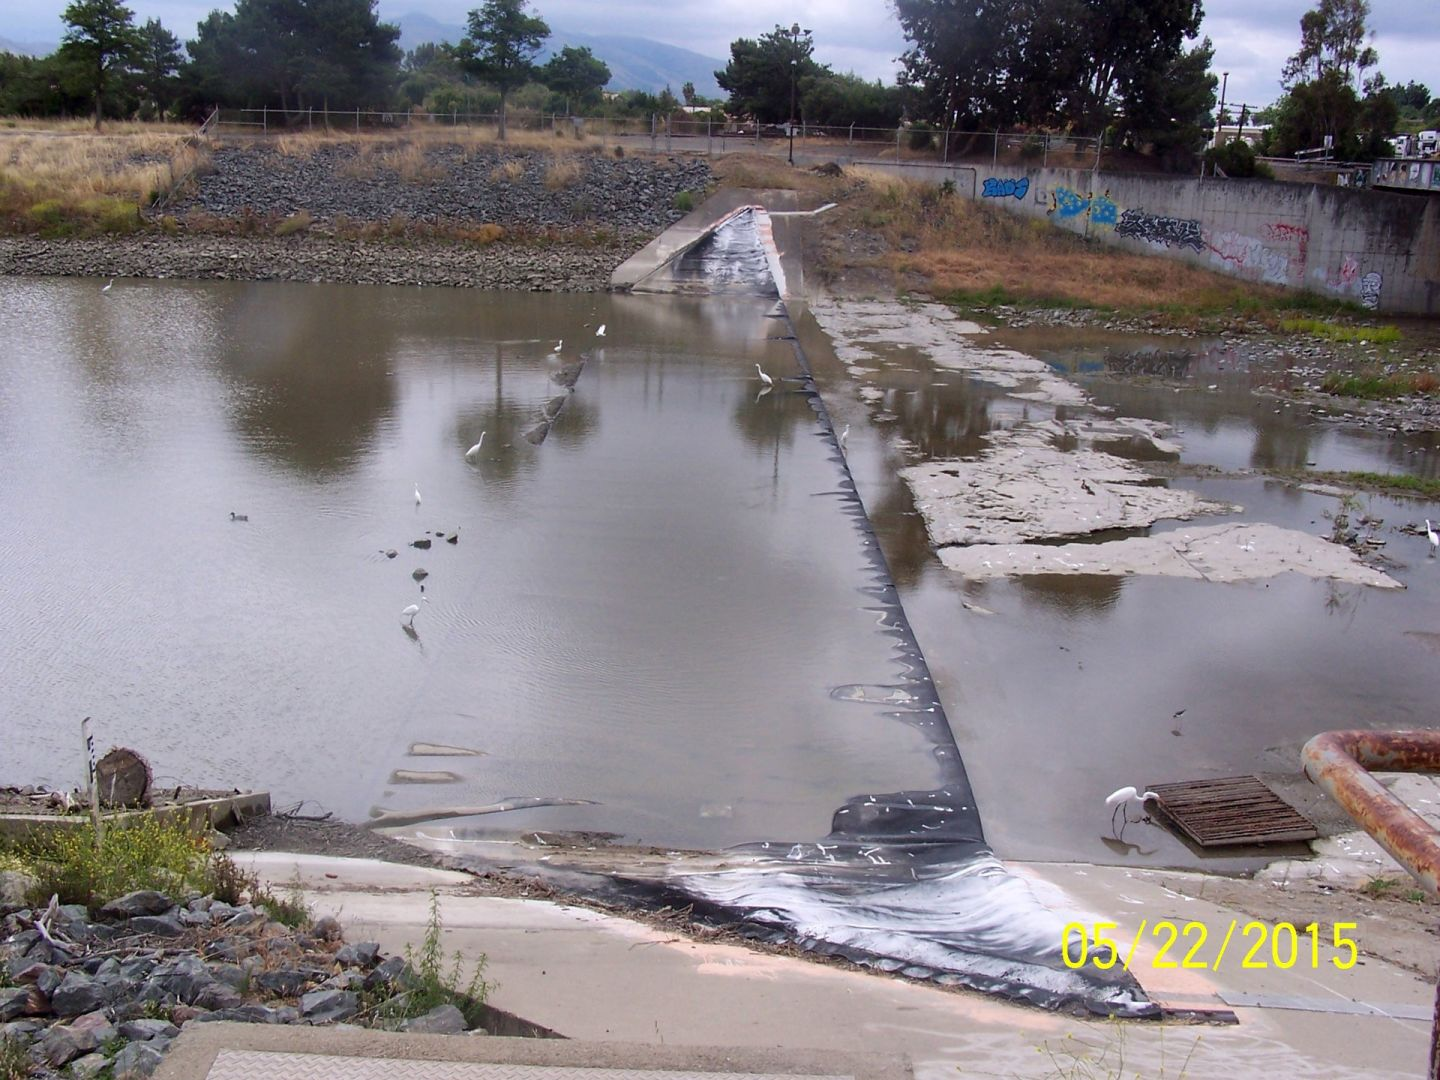 Fremont Vandals Ordered to Pay $100,000 for Damage to Dam